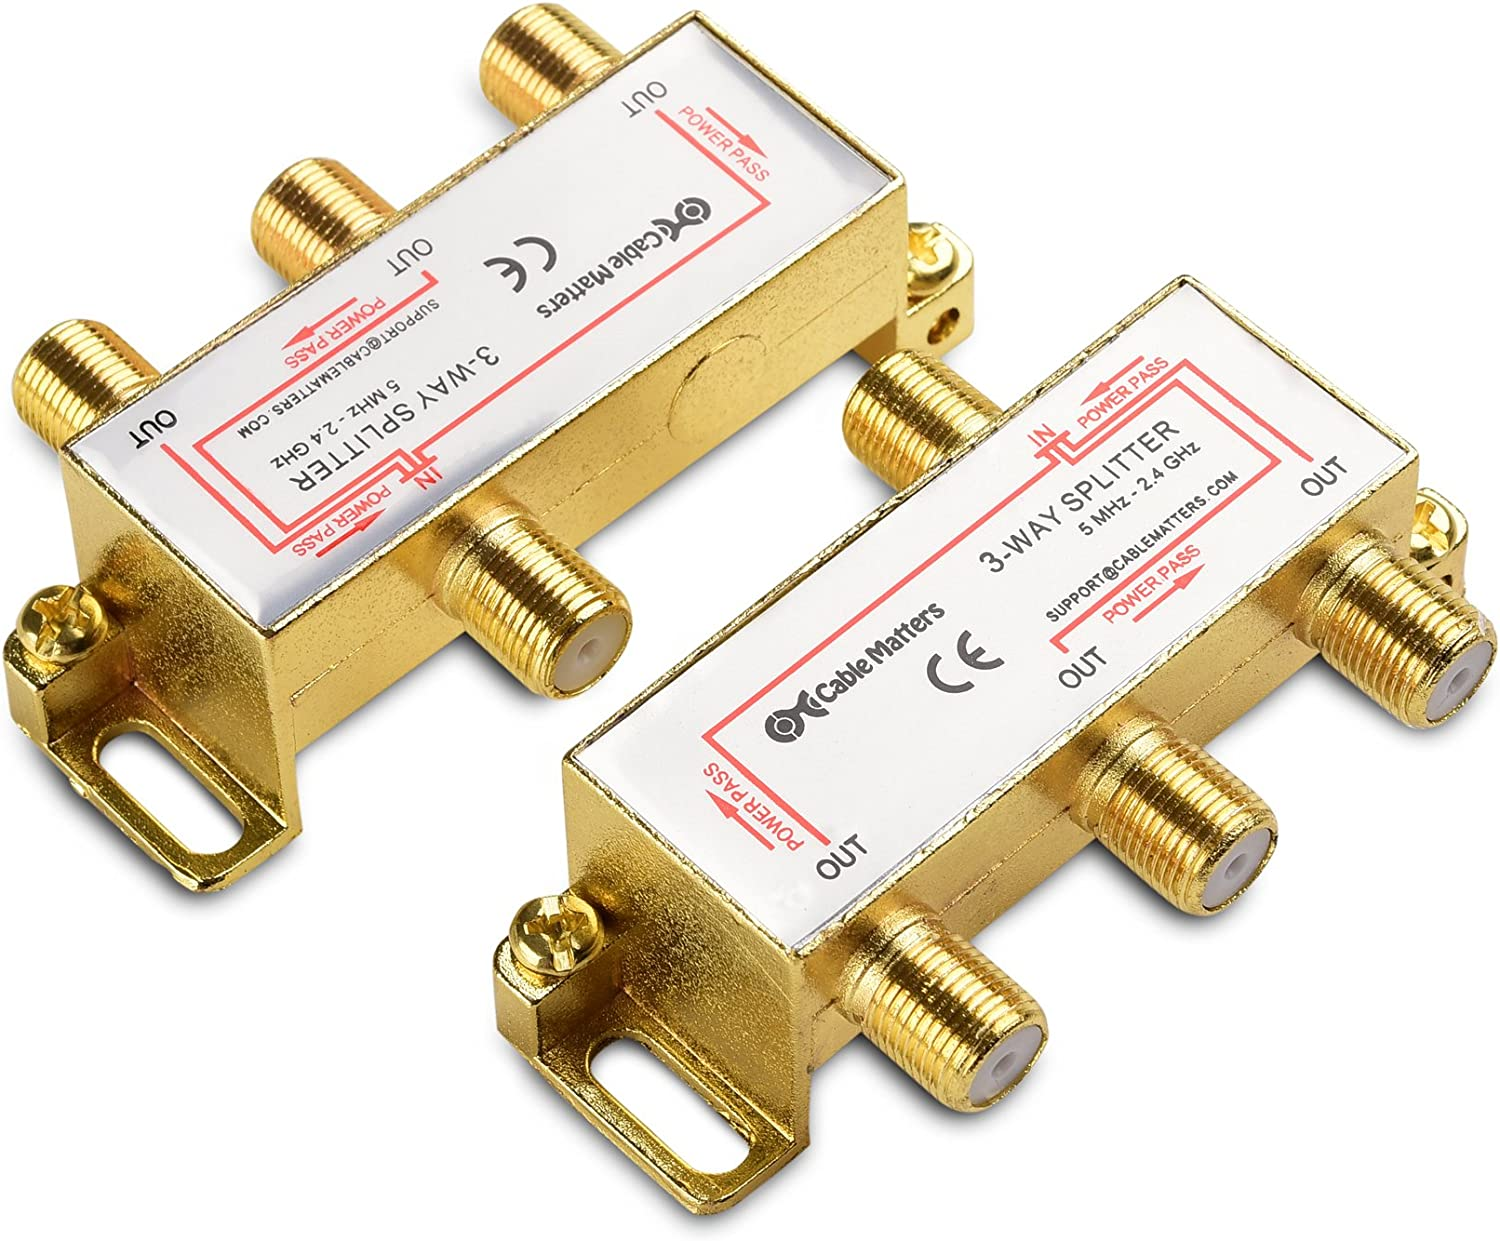 Gold Plated 3-Way 2.4 Ghz Coaxial Splitter Cable Matters 2-Pack